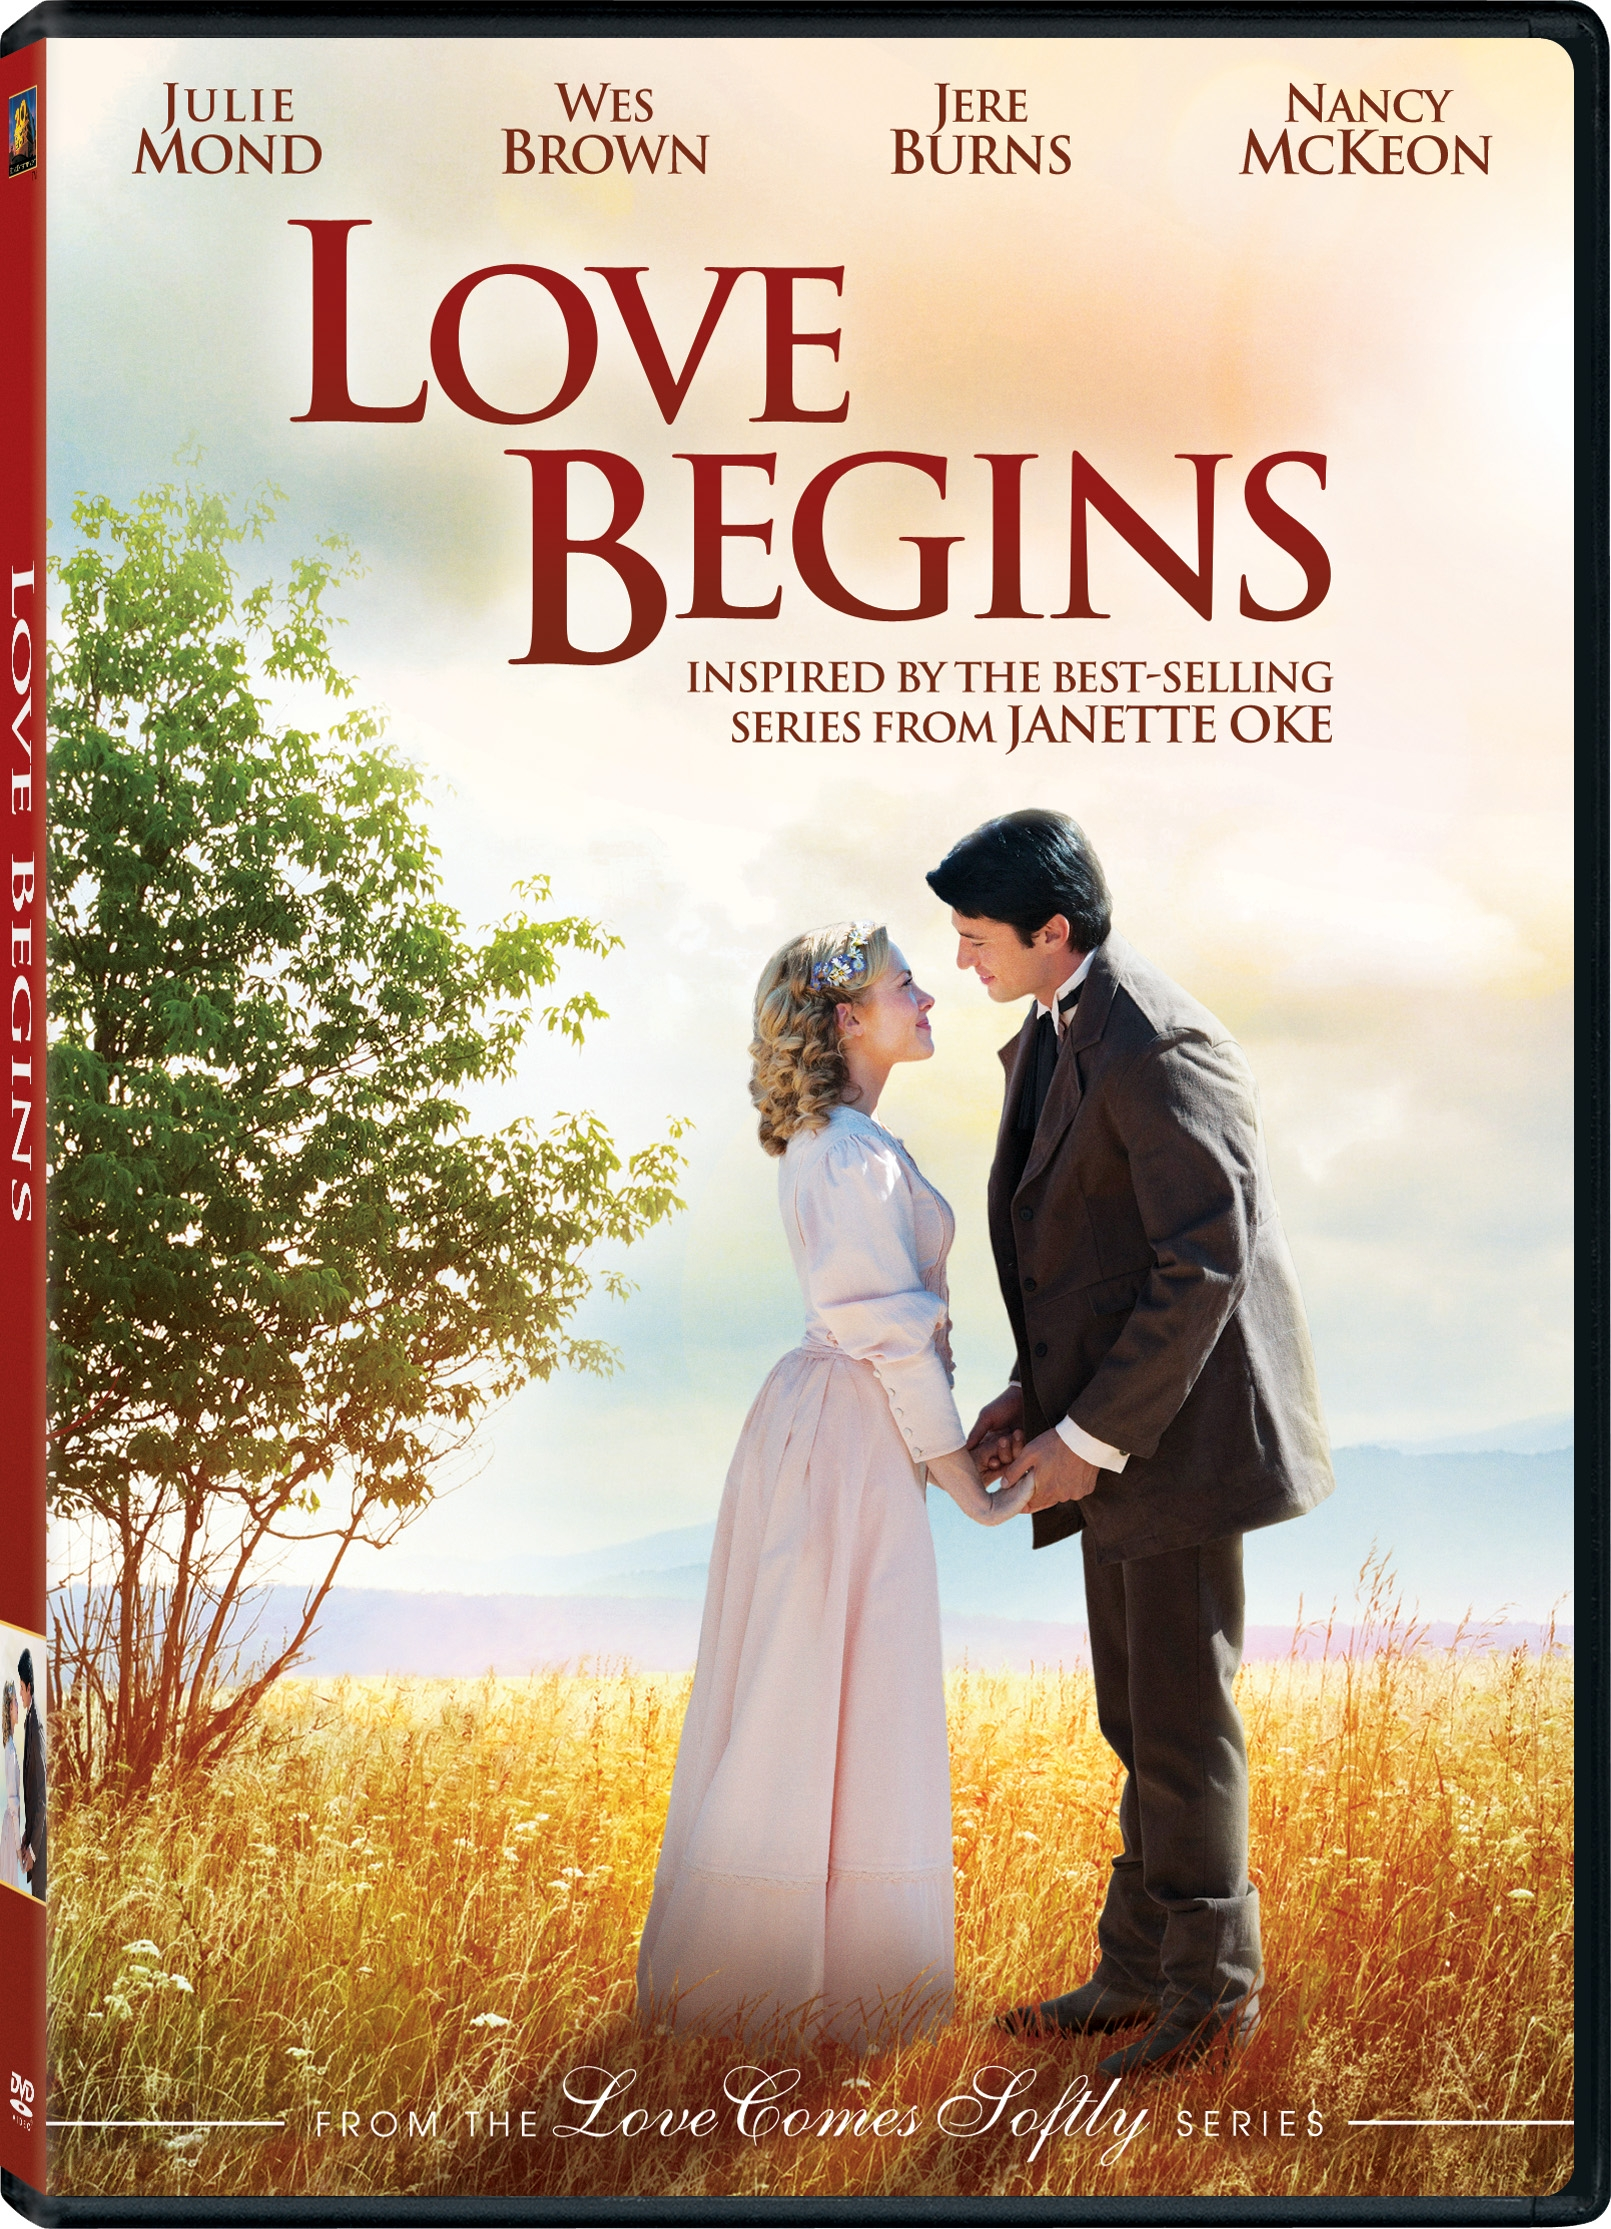 LOVE BEGINS coming to DVD, November 22 + DVD Giveaway